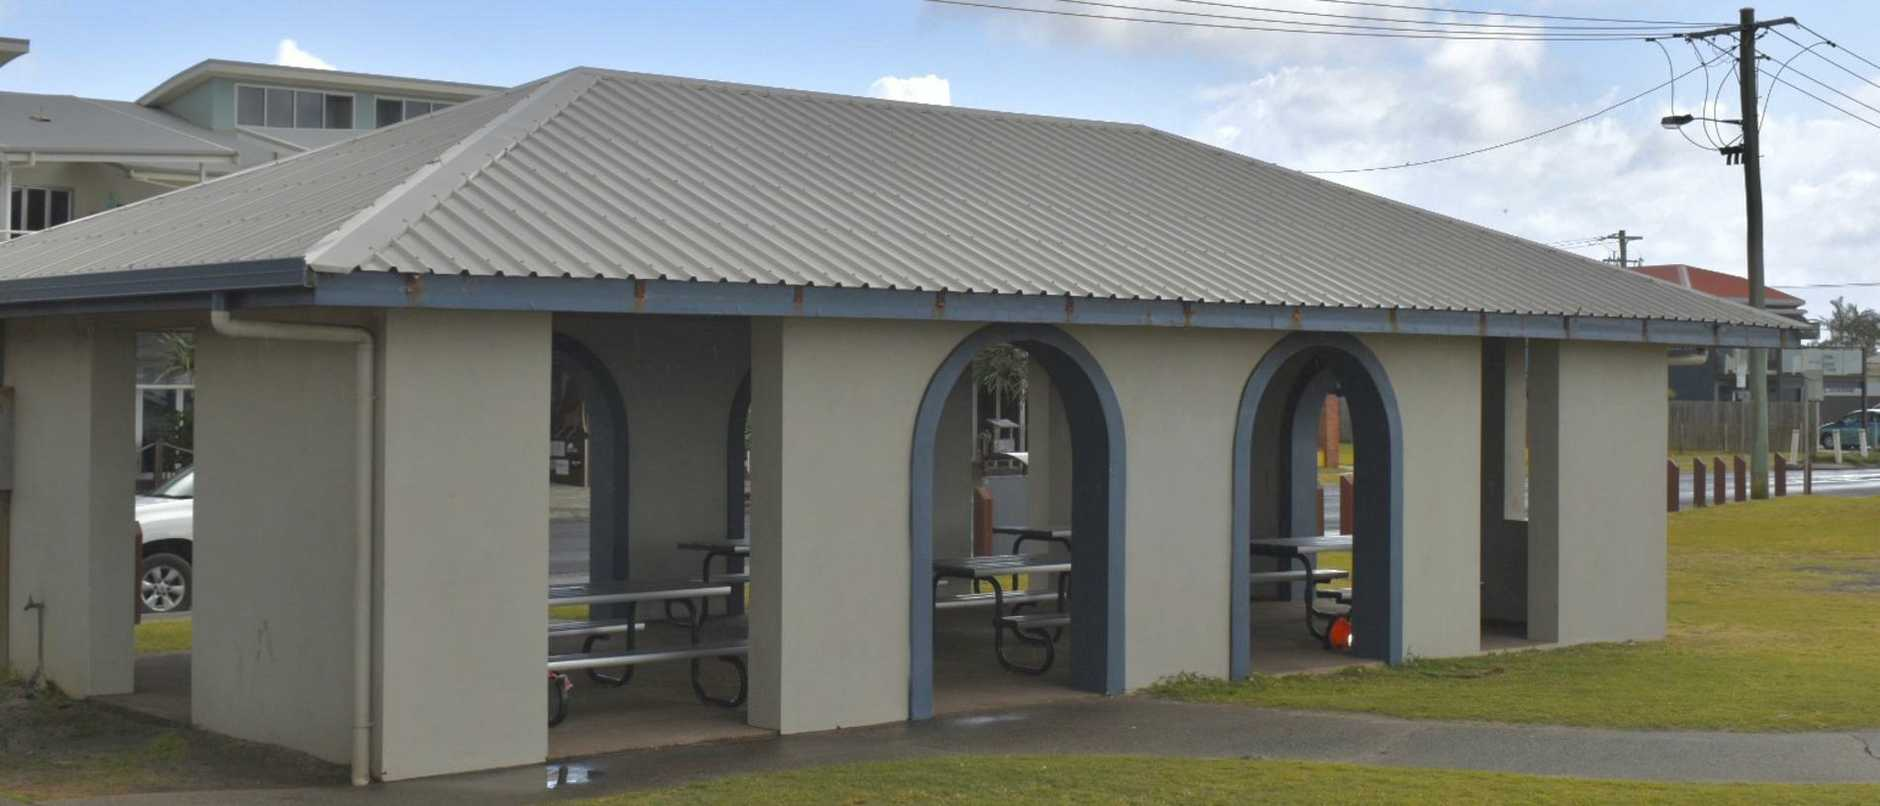 The Pavilion in Lennox Head.